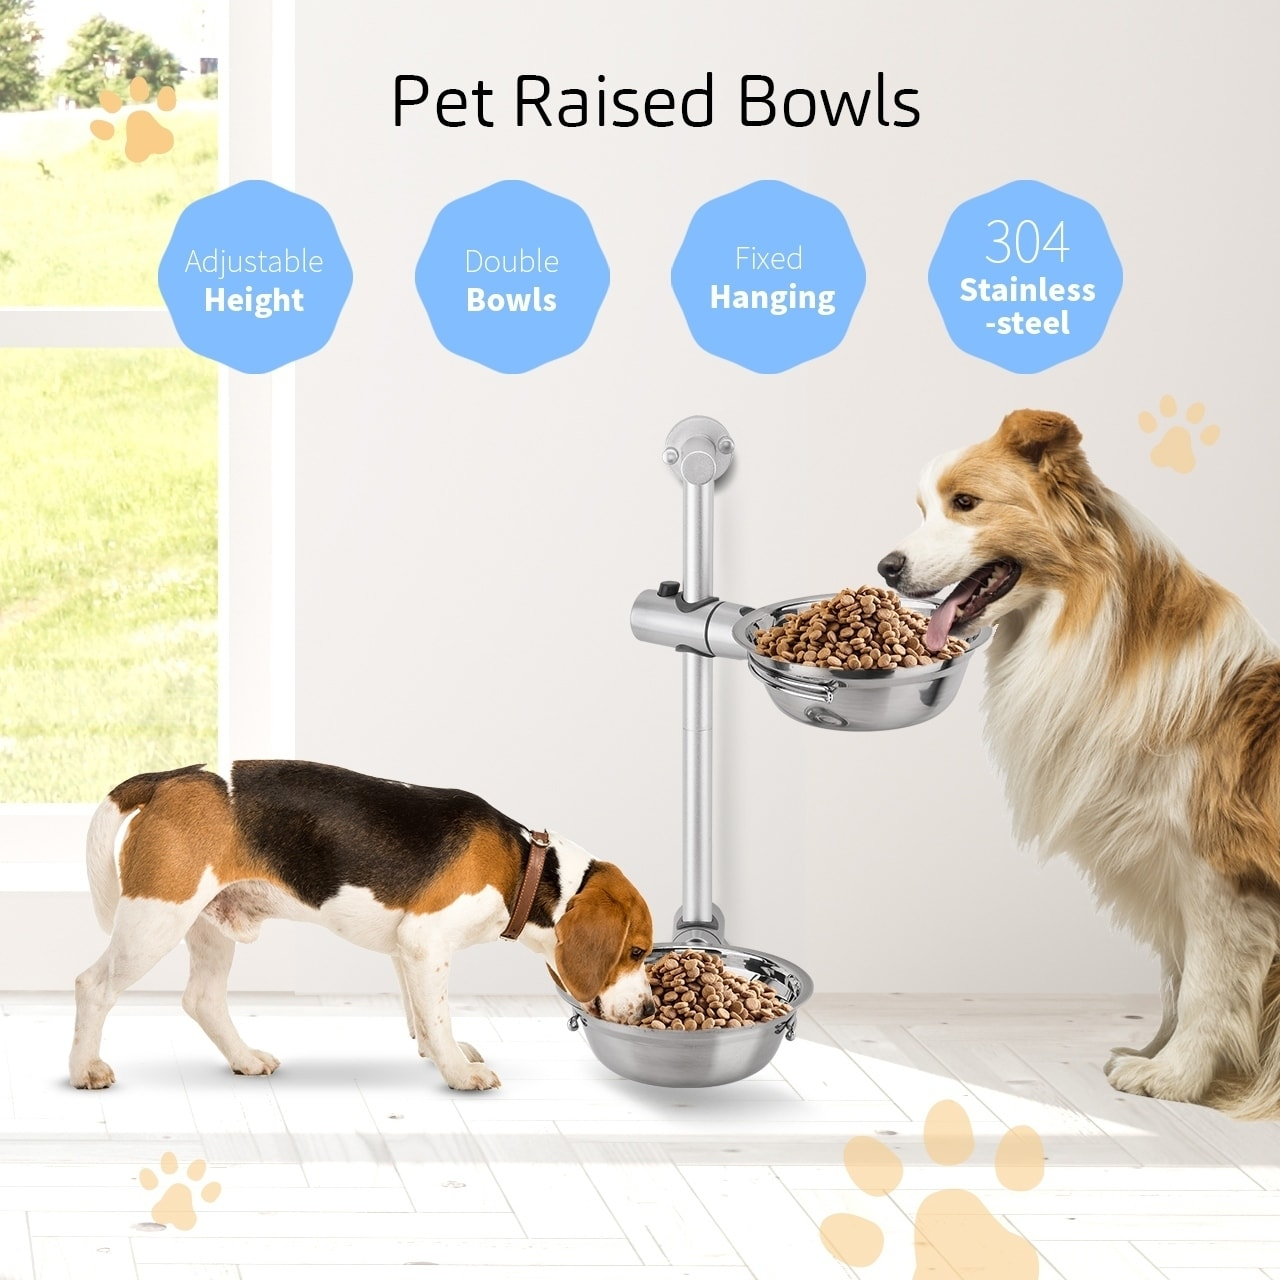 2 Raised Pet Feeders Adjustable Pet Bowls Hanging Stainless Steel Bowls For Different Size Dog Cat Silver Coutlet Pet Feeder Pets Pet Bowls